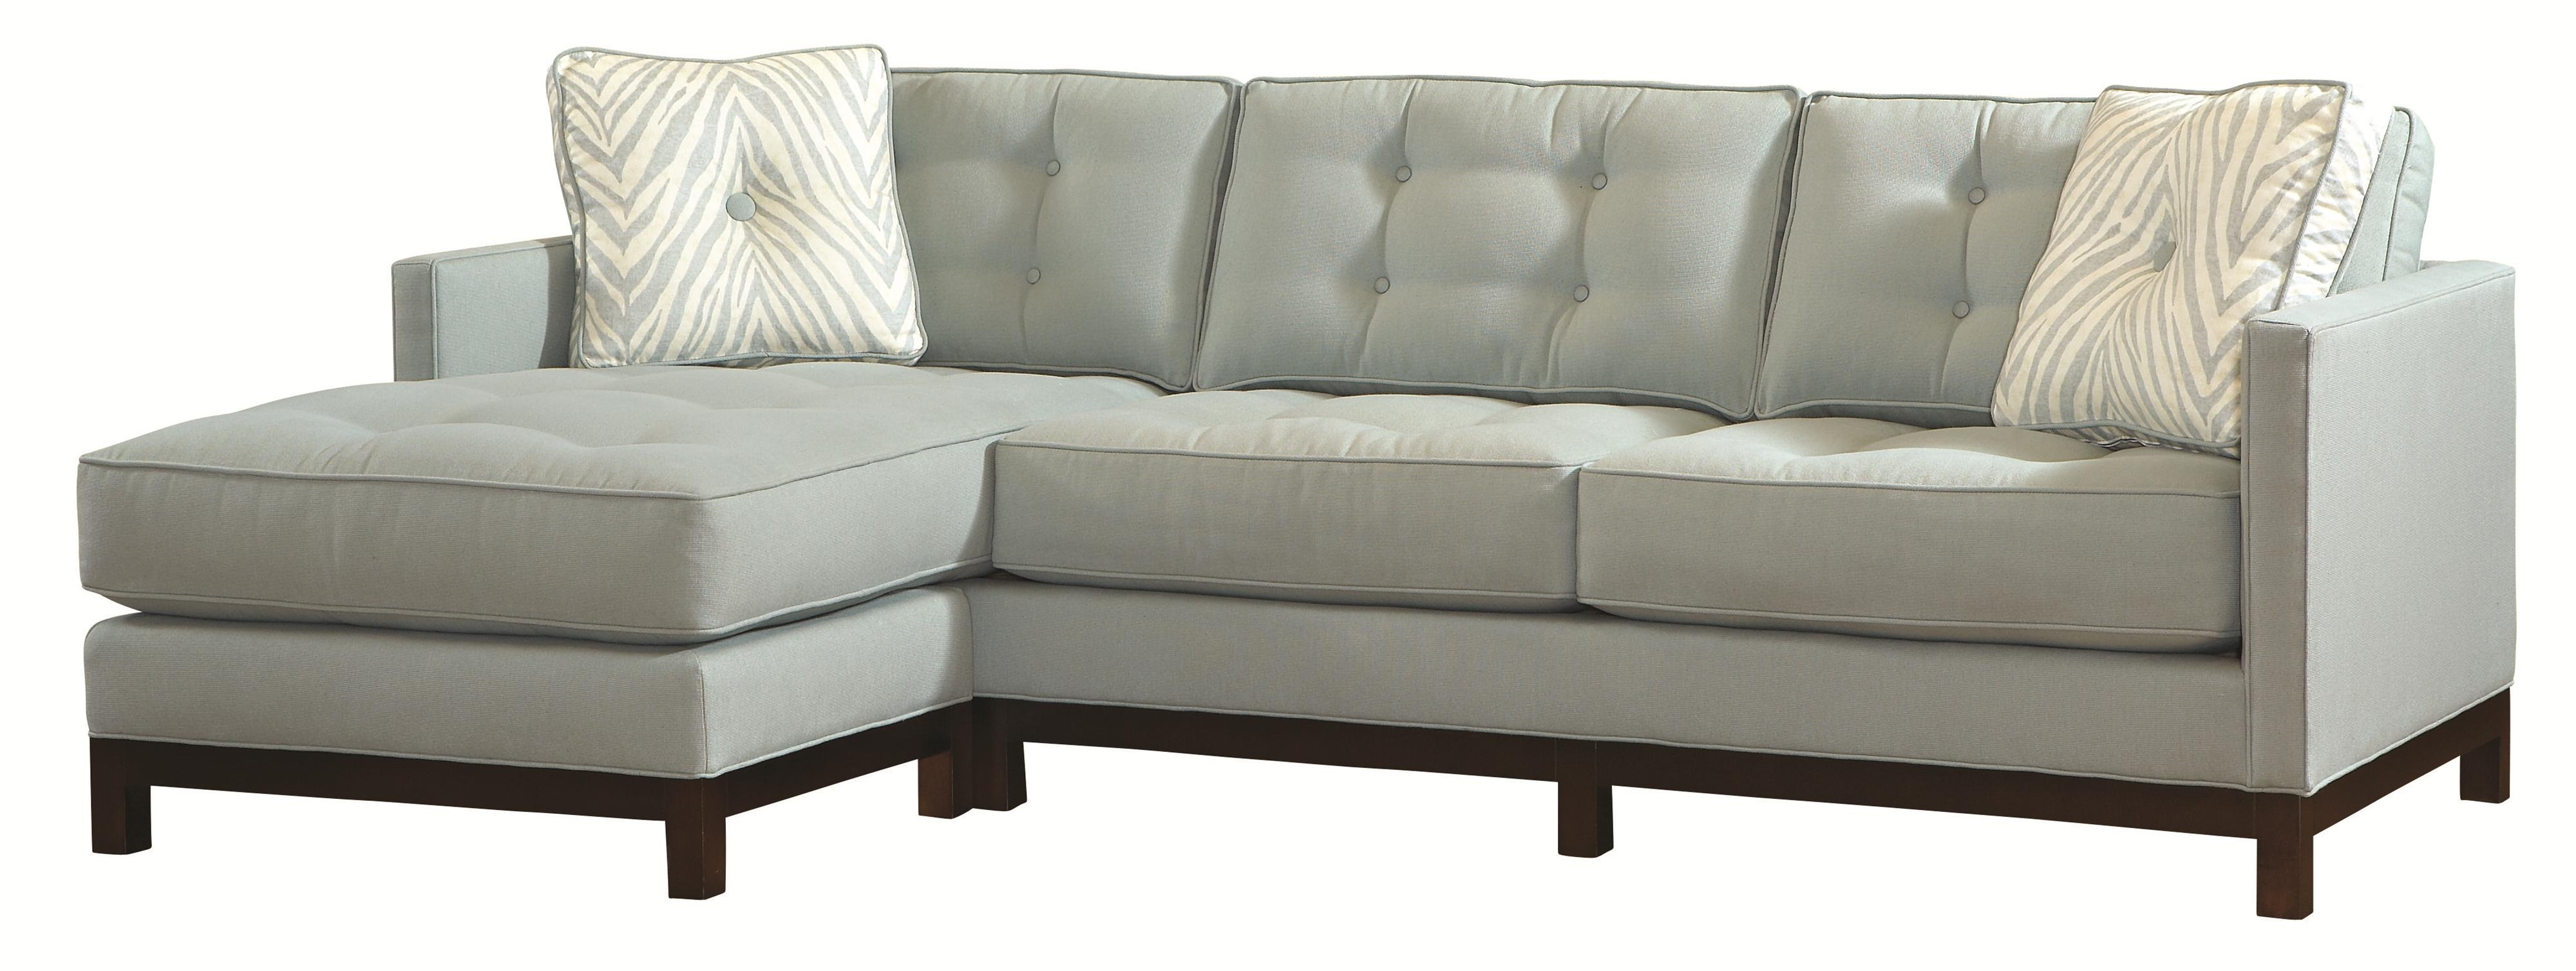 Urban Spaces - Fleetwood Bi-Sectional by Lexington at Baer's Furniture